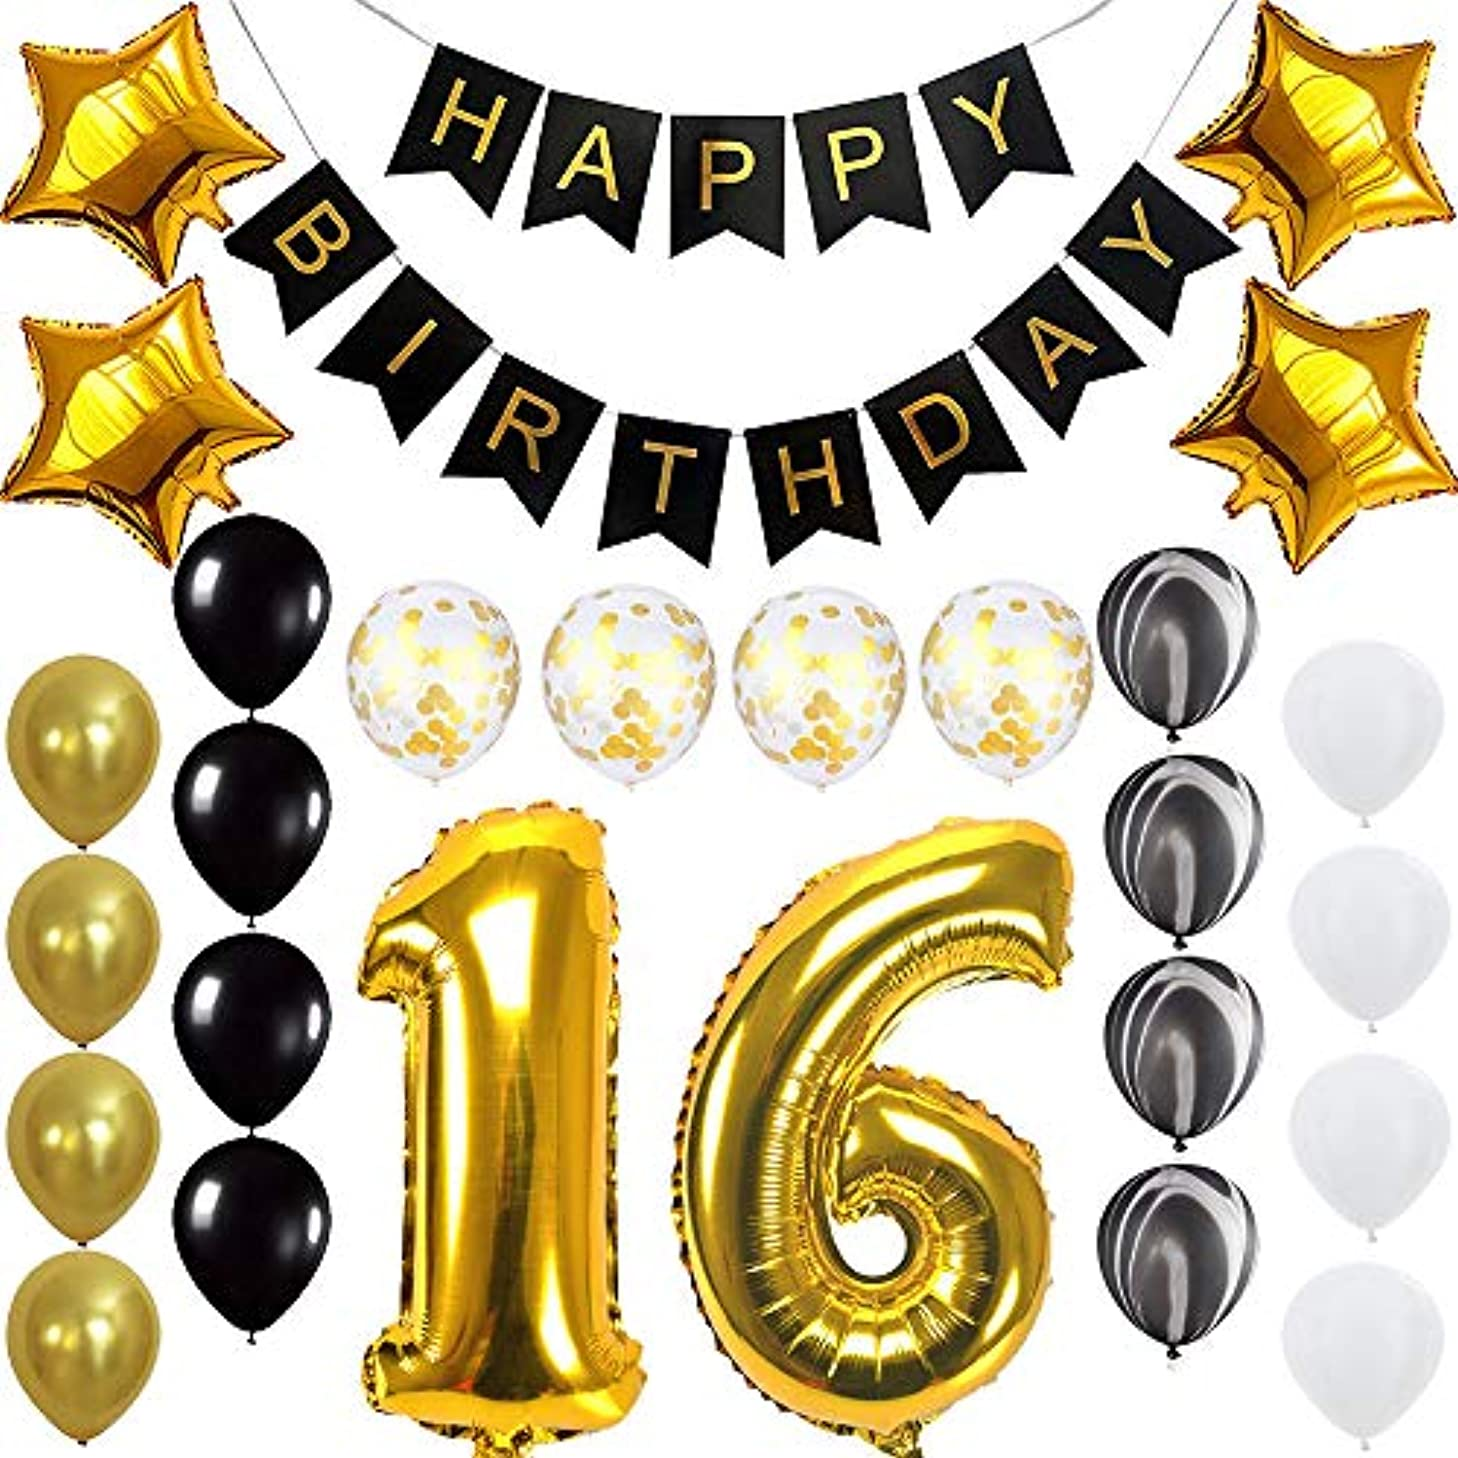 Happy 16th Birthday Banner Balloons Set for Sweet 16 Years Old Birthday Party Decoration Supplies Gold Black